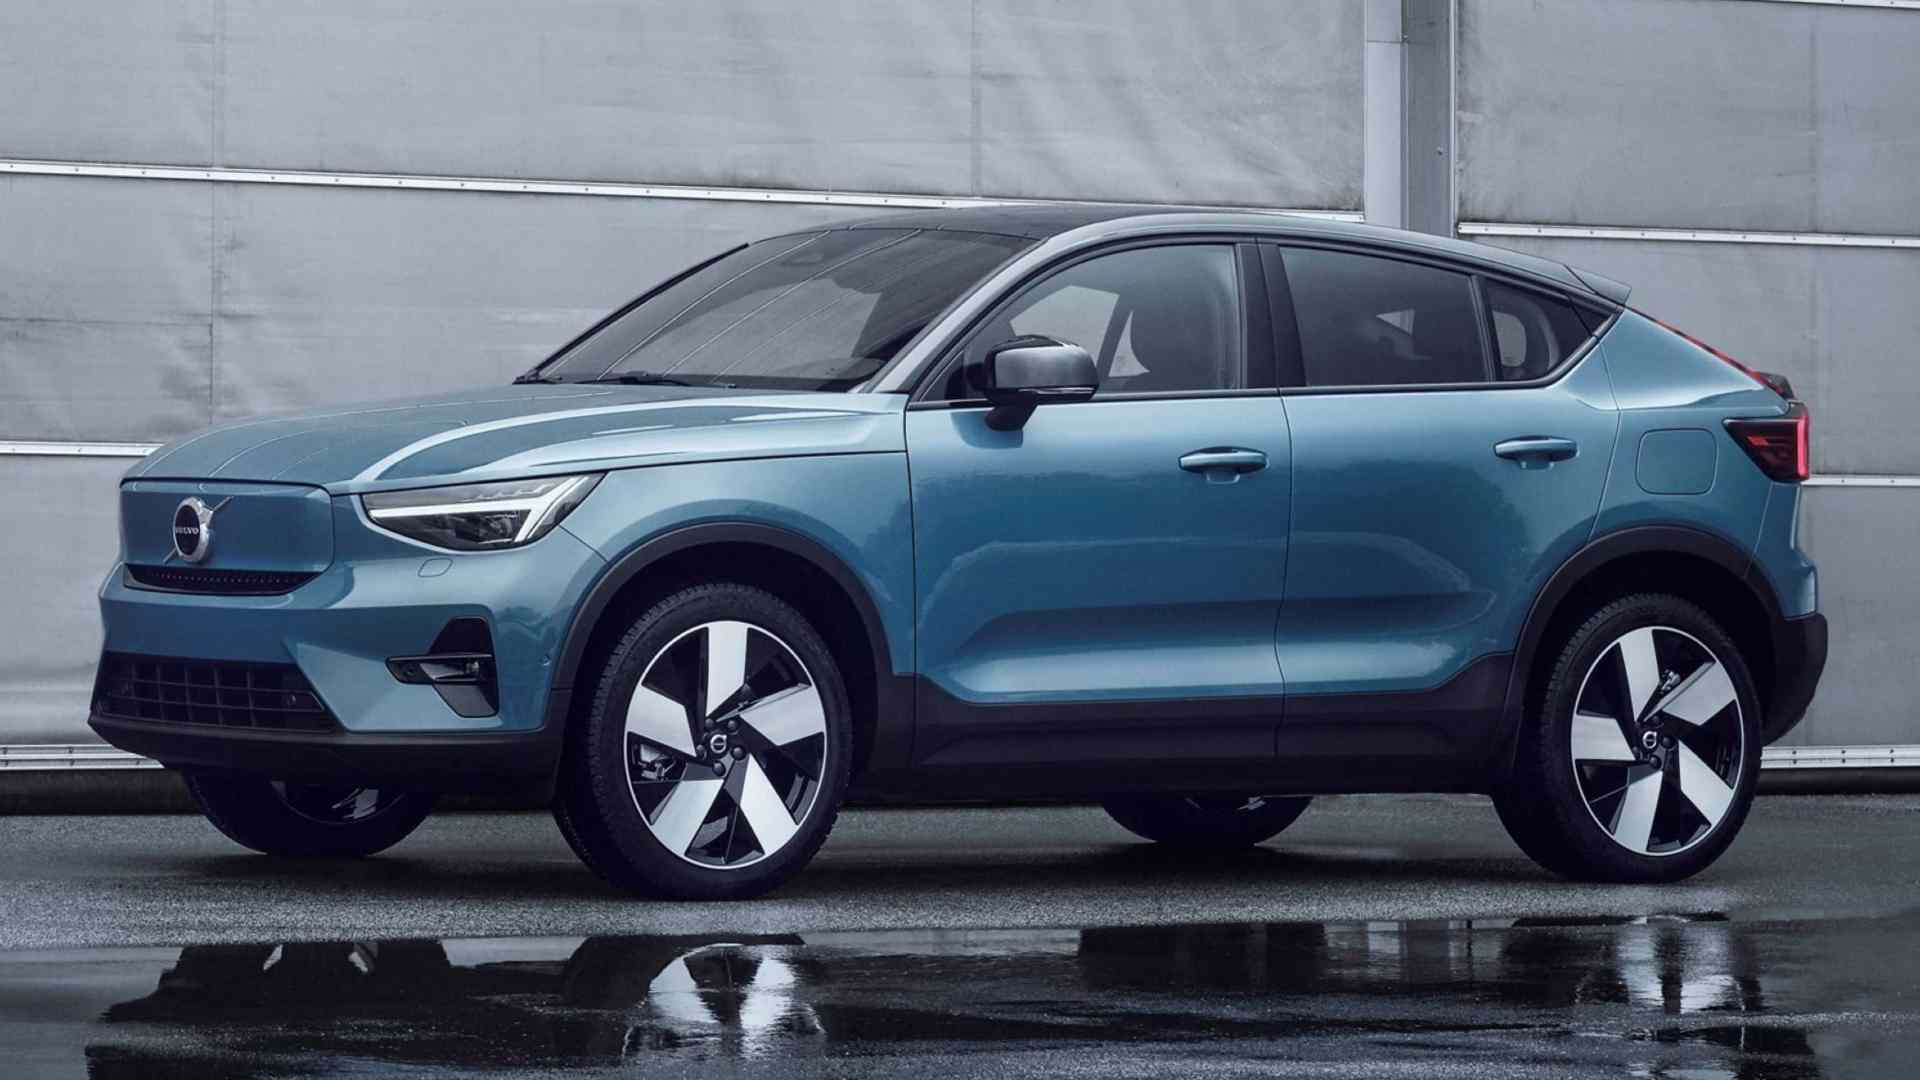 The Volvo C40 Recharge sits is 70mm shorter than the XC40 Recharge it's based on. Image: Volvo Cars